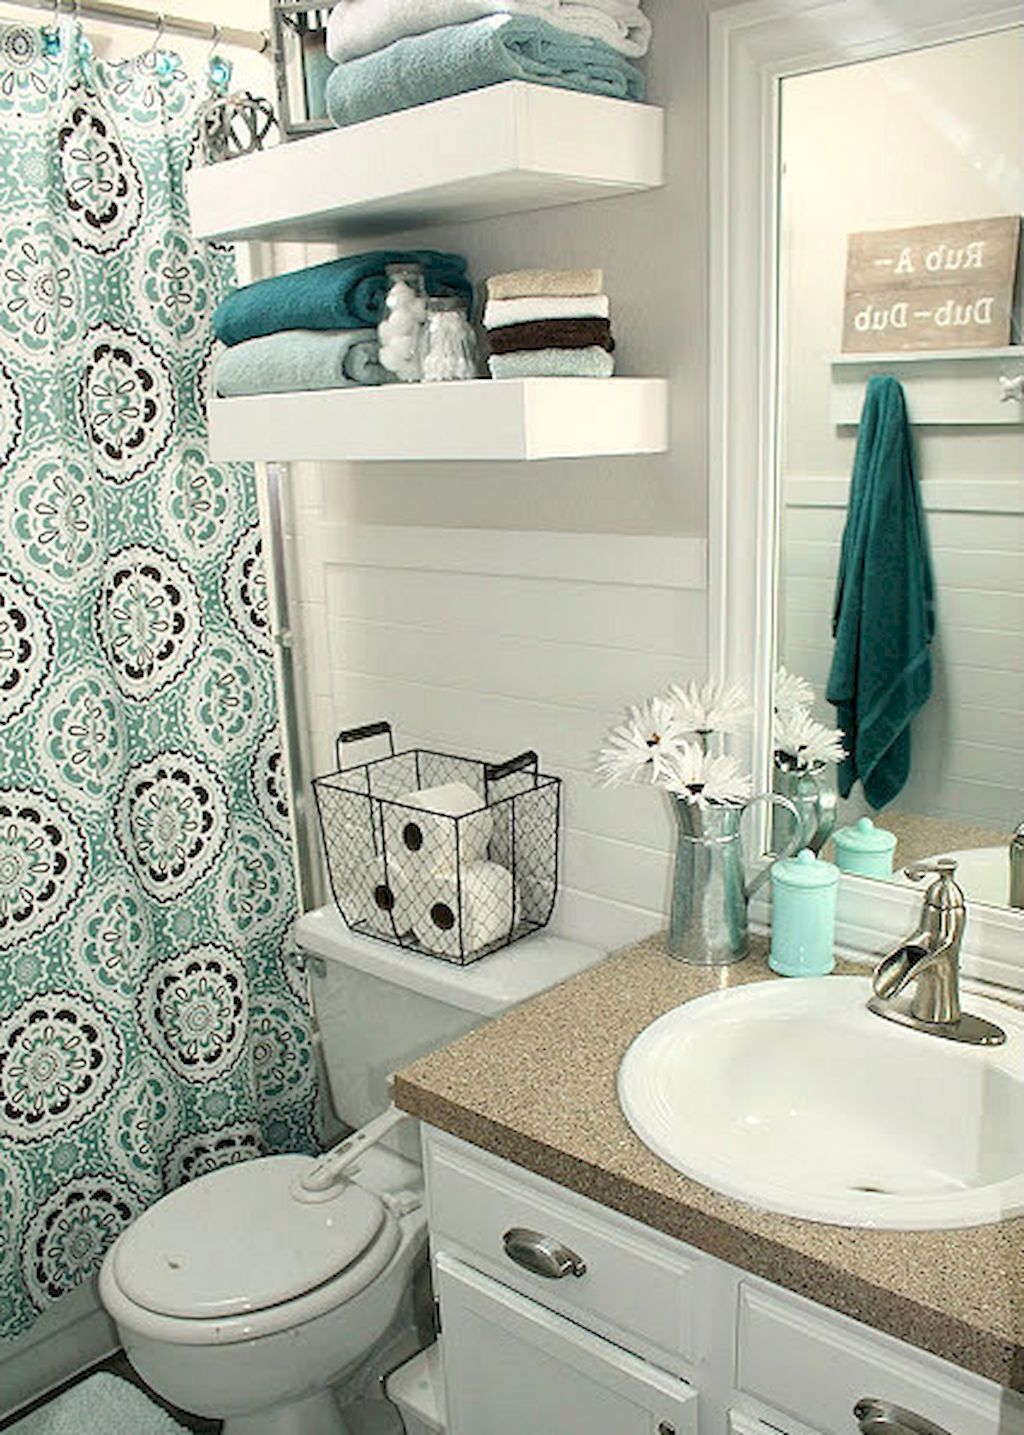 30 diy small apartment decorating ideas on a budget for Decorating bathroom ideas on a budget